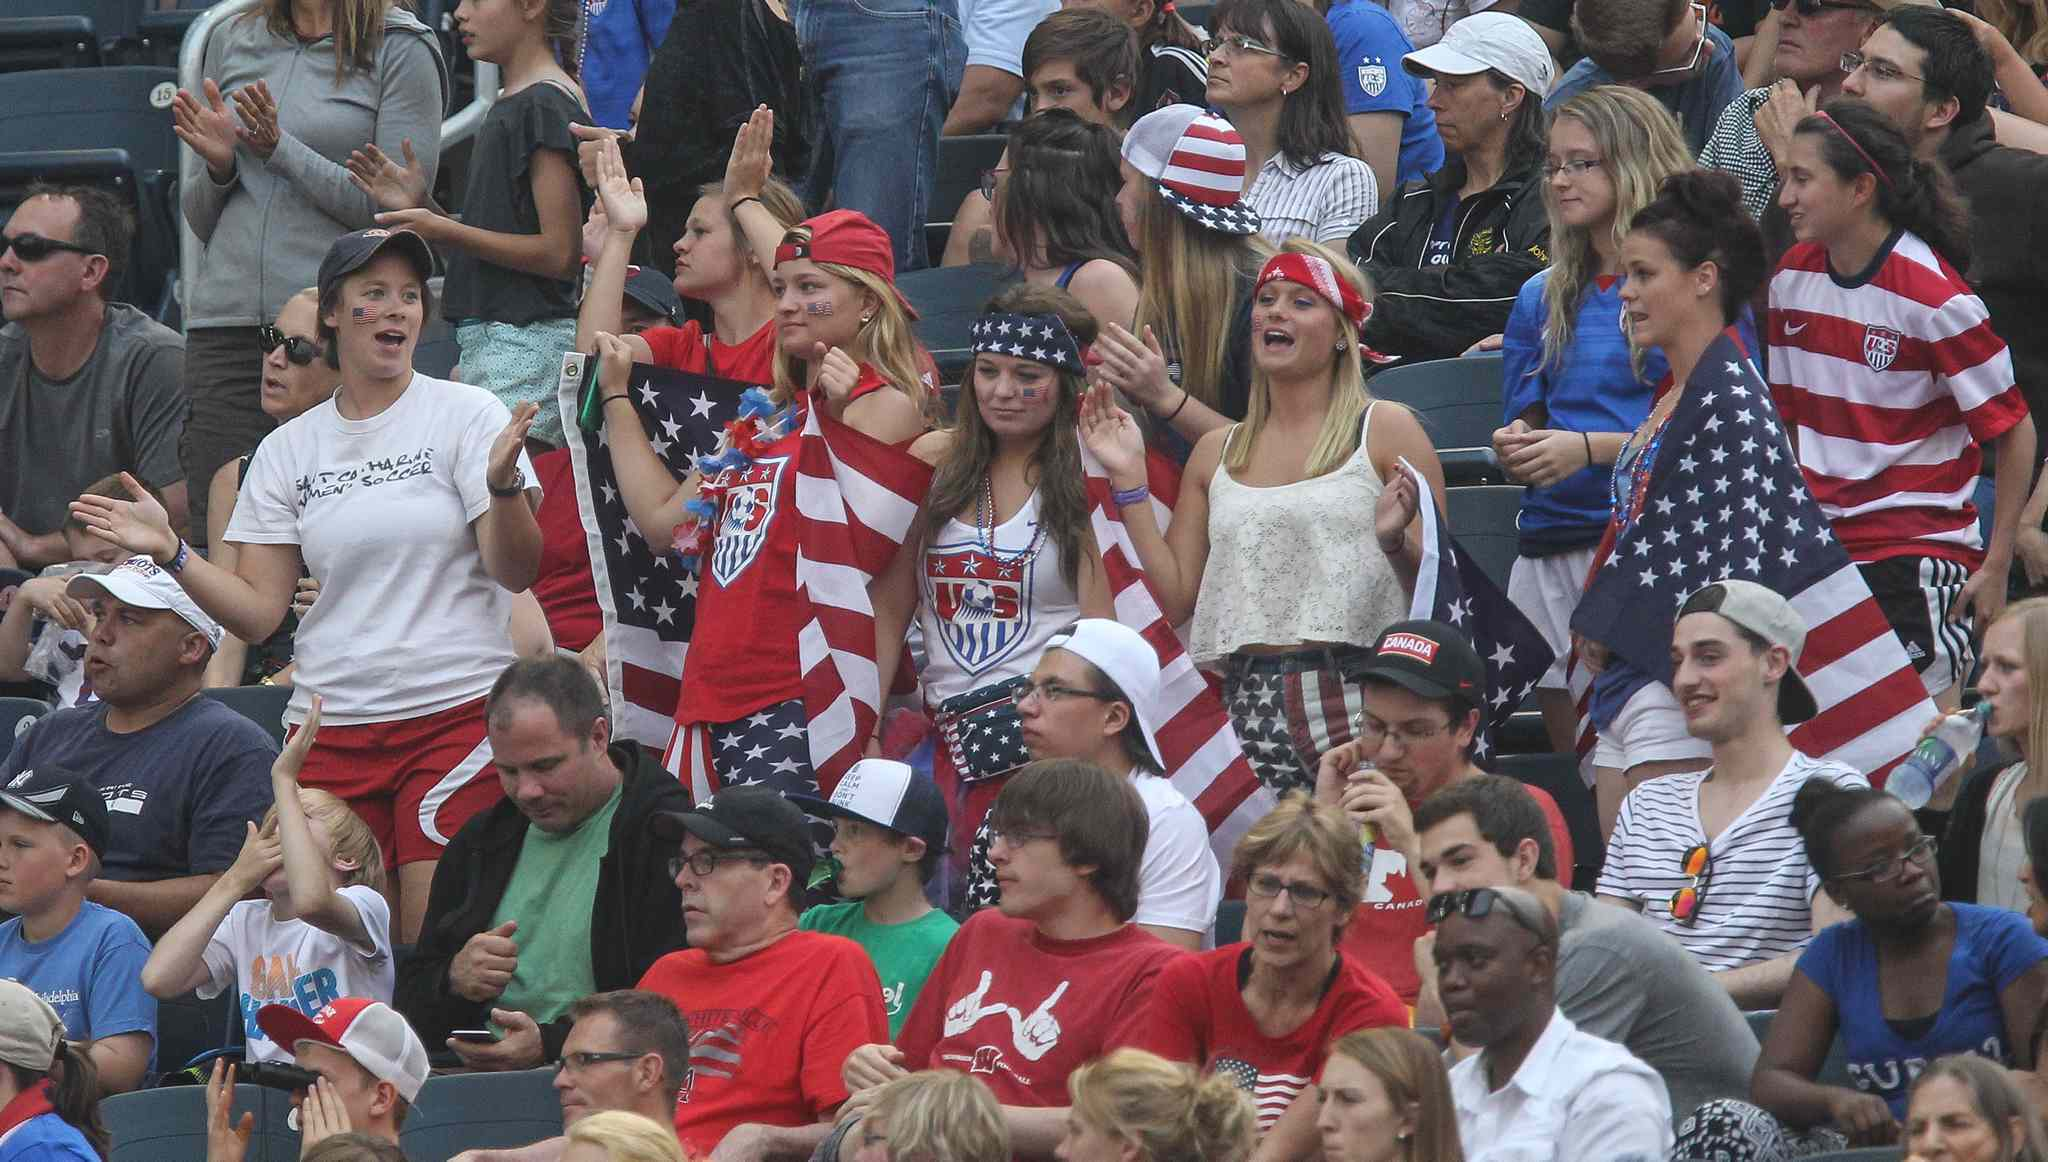 USA fans during half time at the USA vs. Australia game of FIFA Women's World Cup soccer action in Winnipeg on Monday, June 8, 2015.